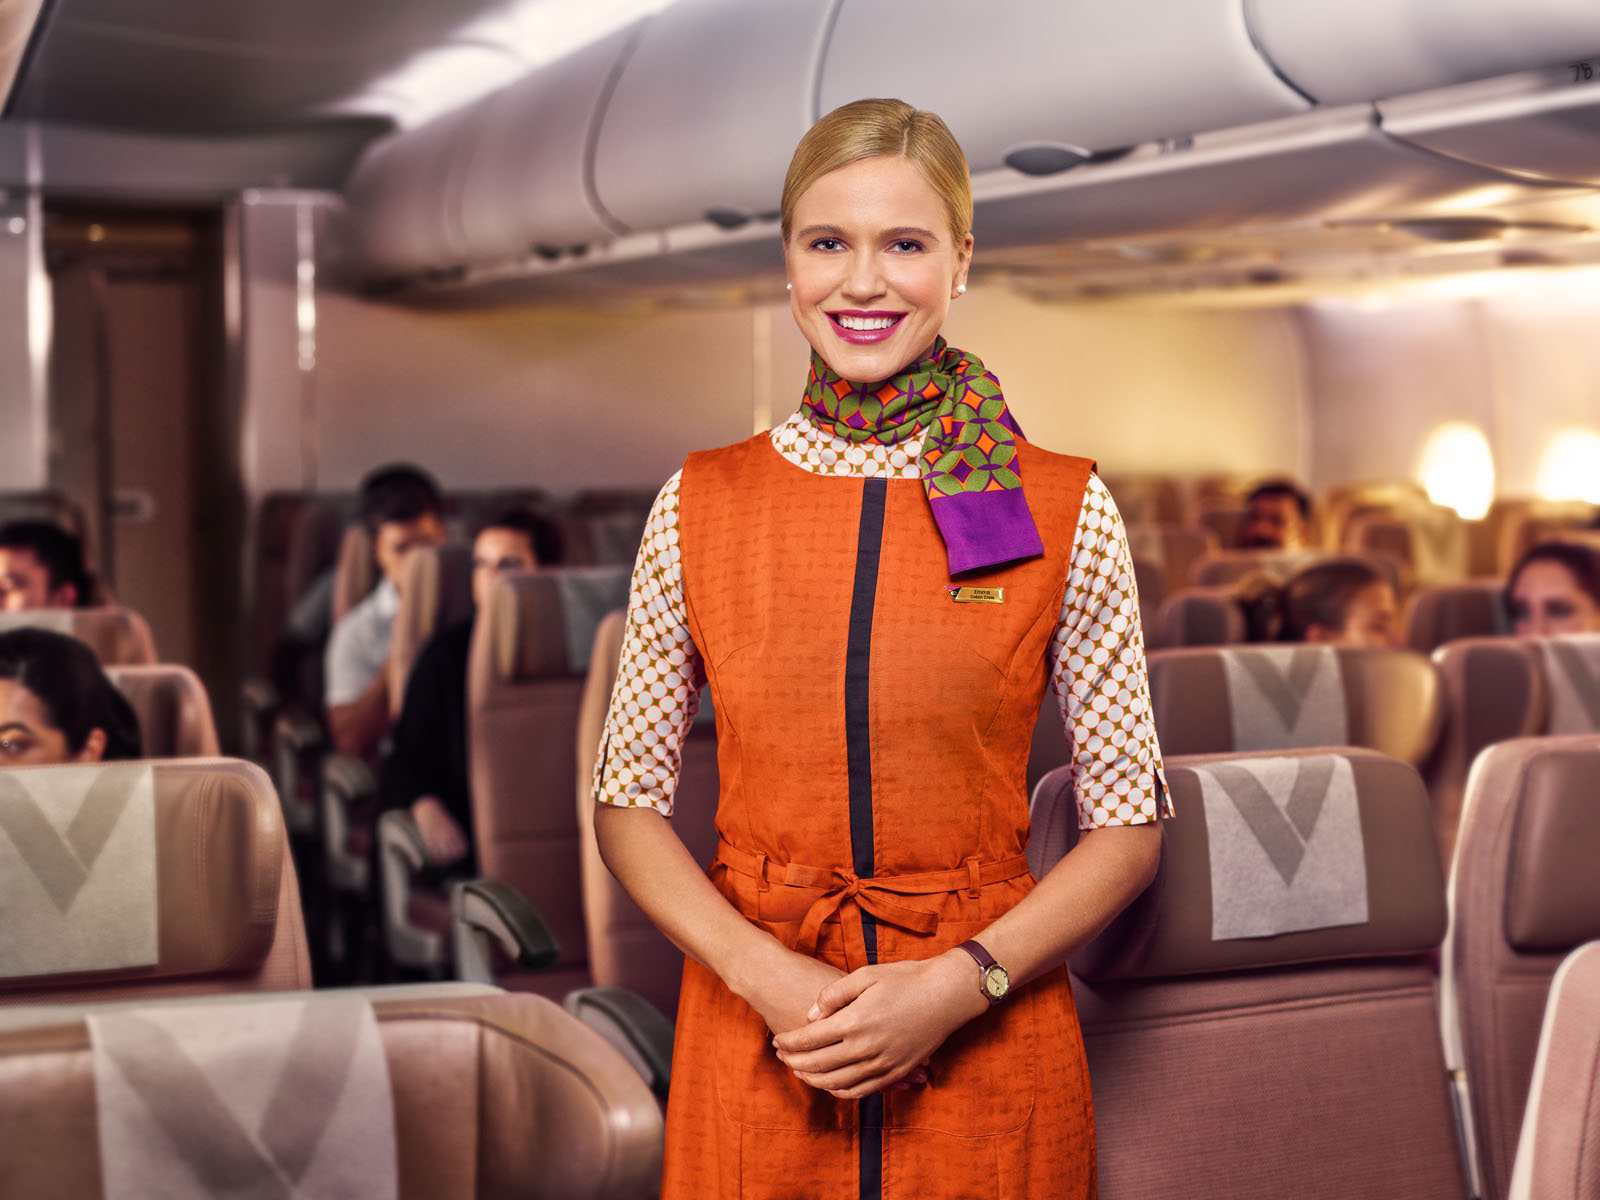 5 Things You Don't Know About Etihad Airways